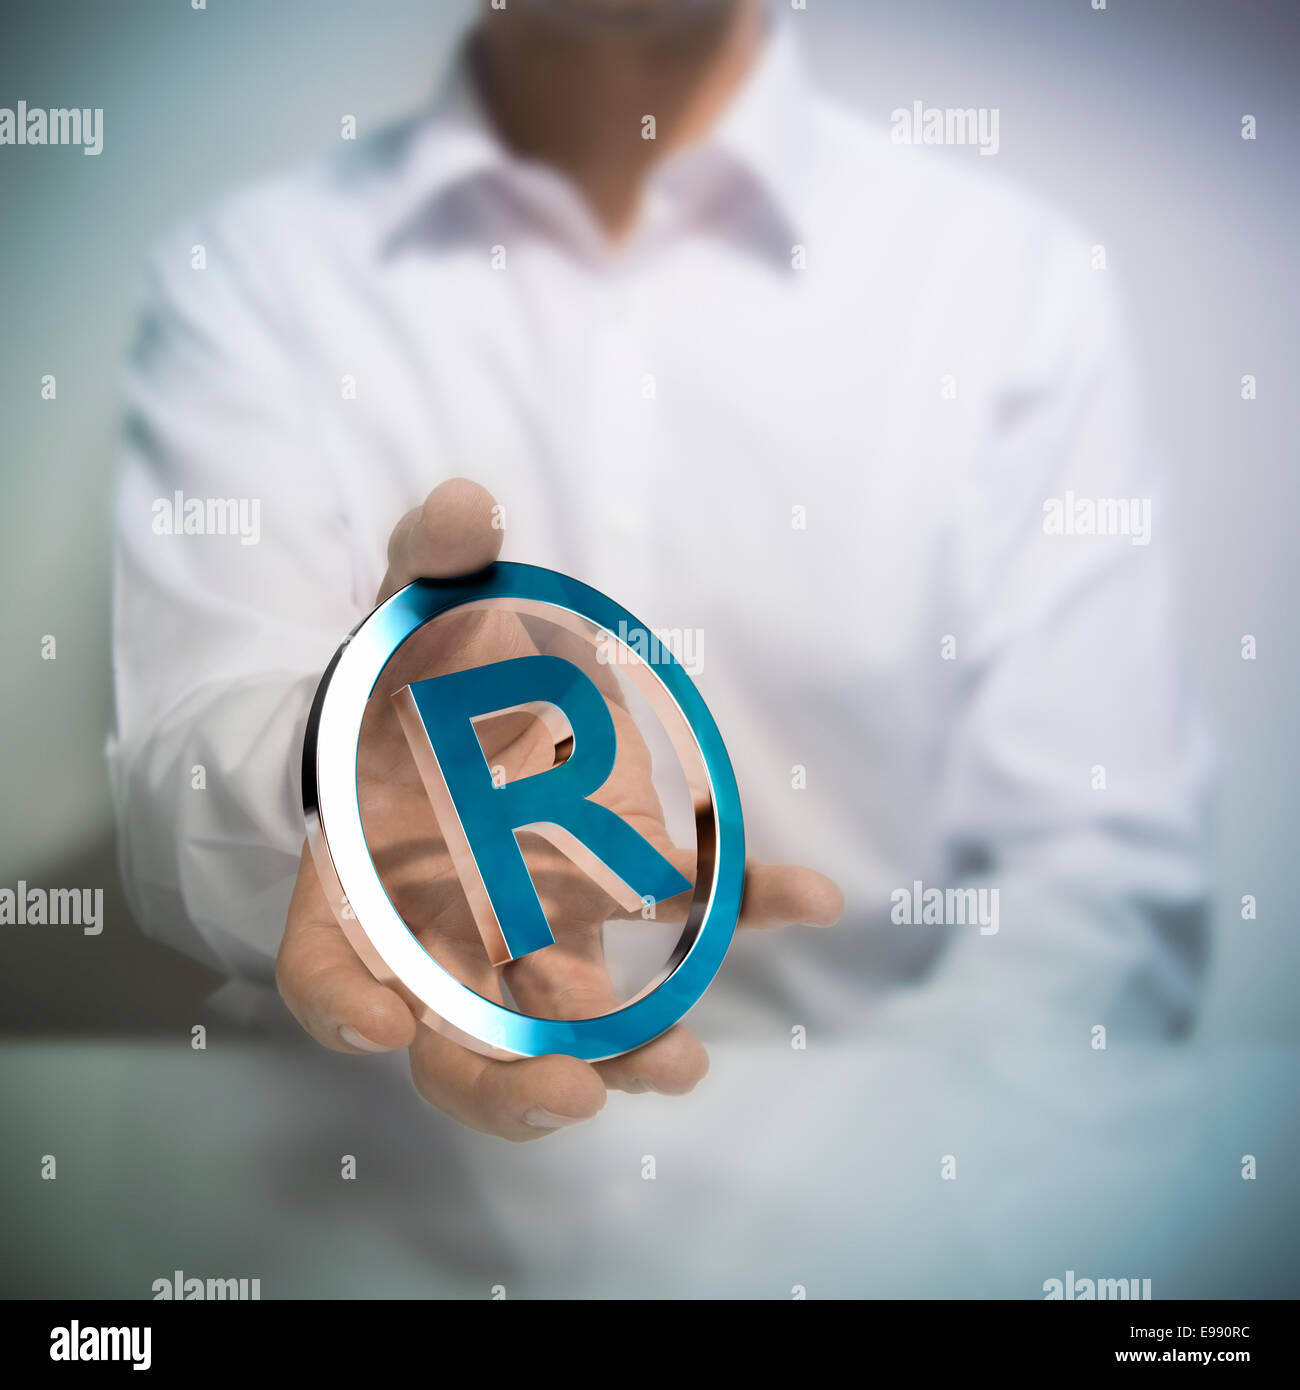 Registered trademark symbol stock photos registered trademark man holding metallic registered trademark symbol concept image for illustration of intellectual property or protection biocorpaavc Gallery